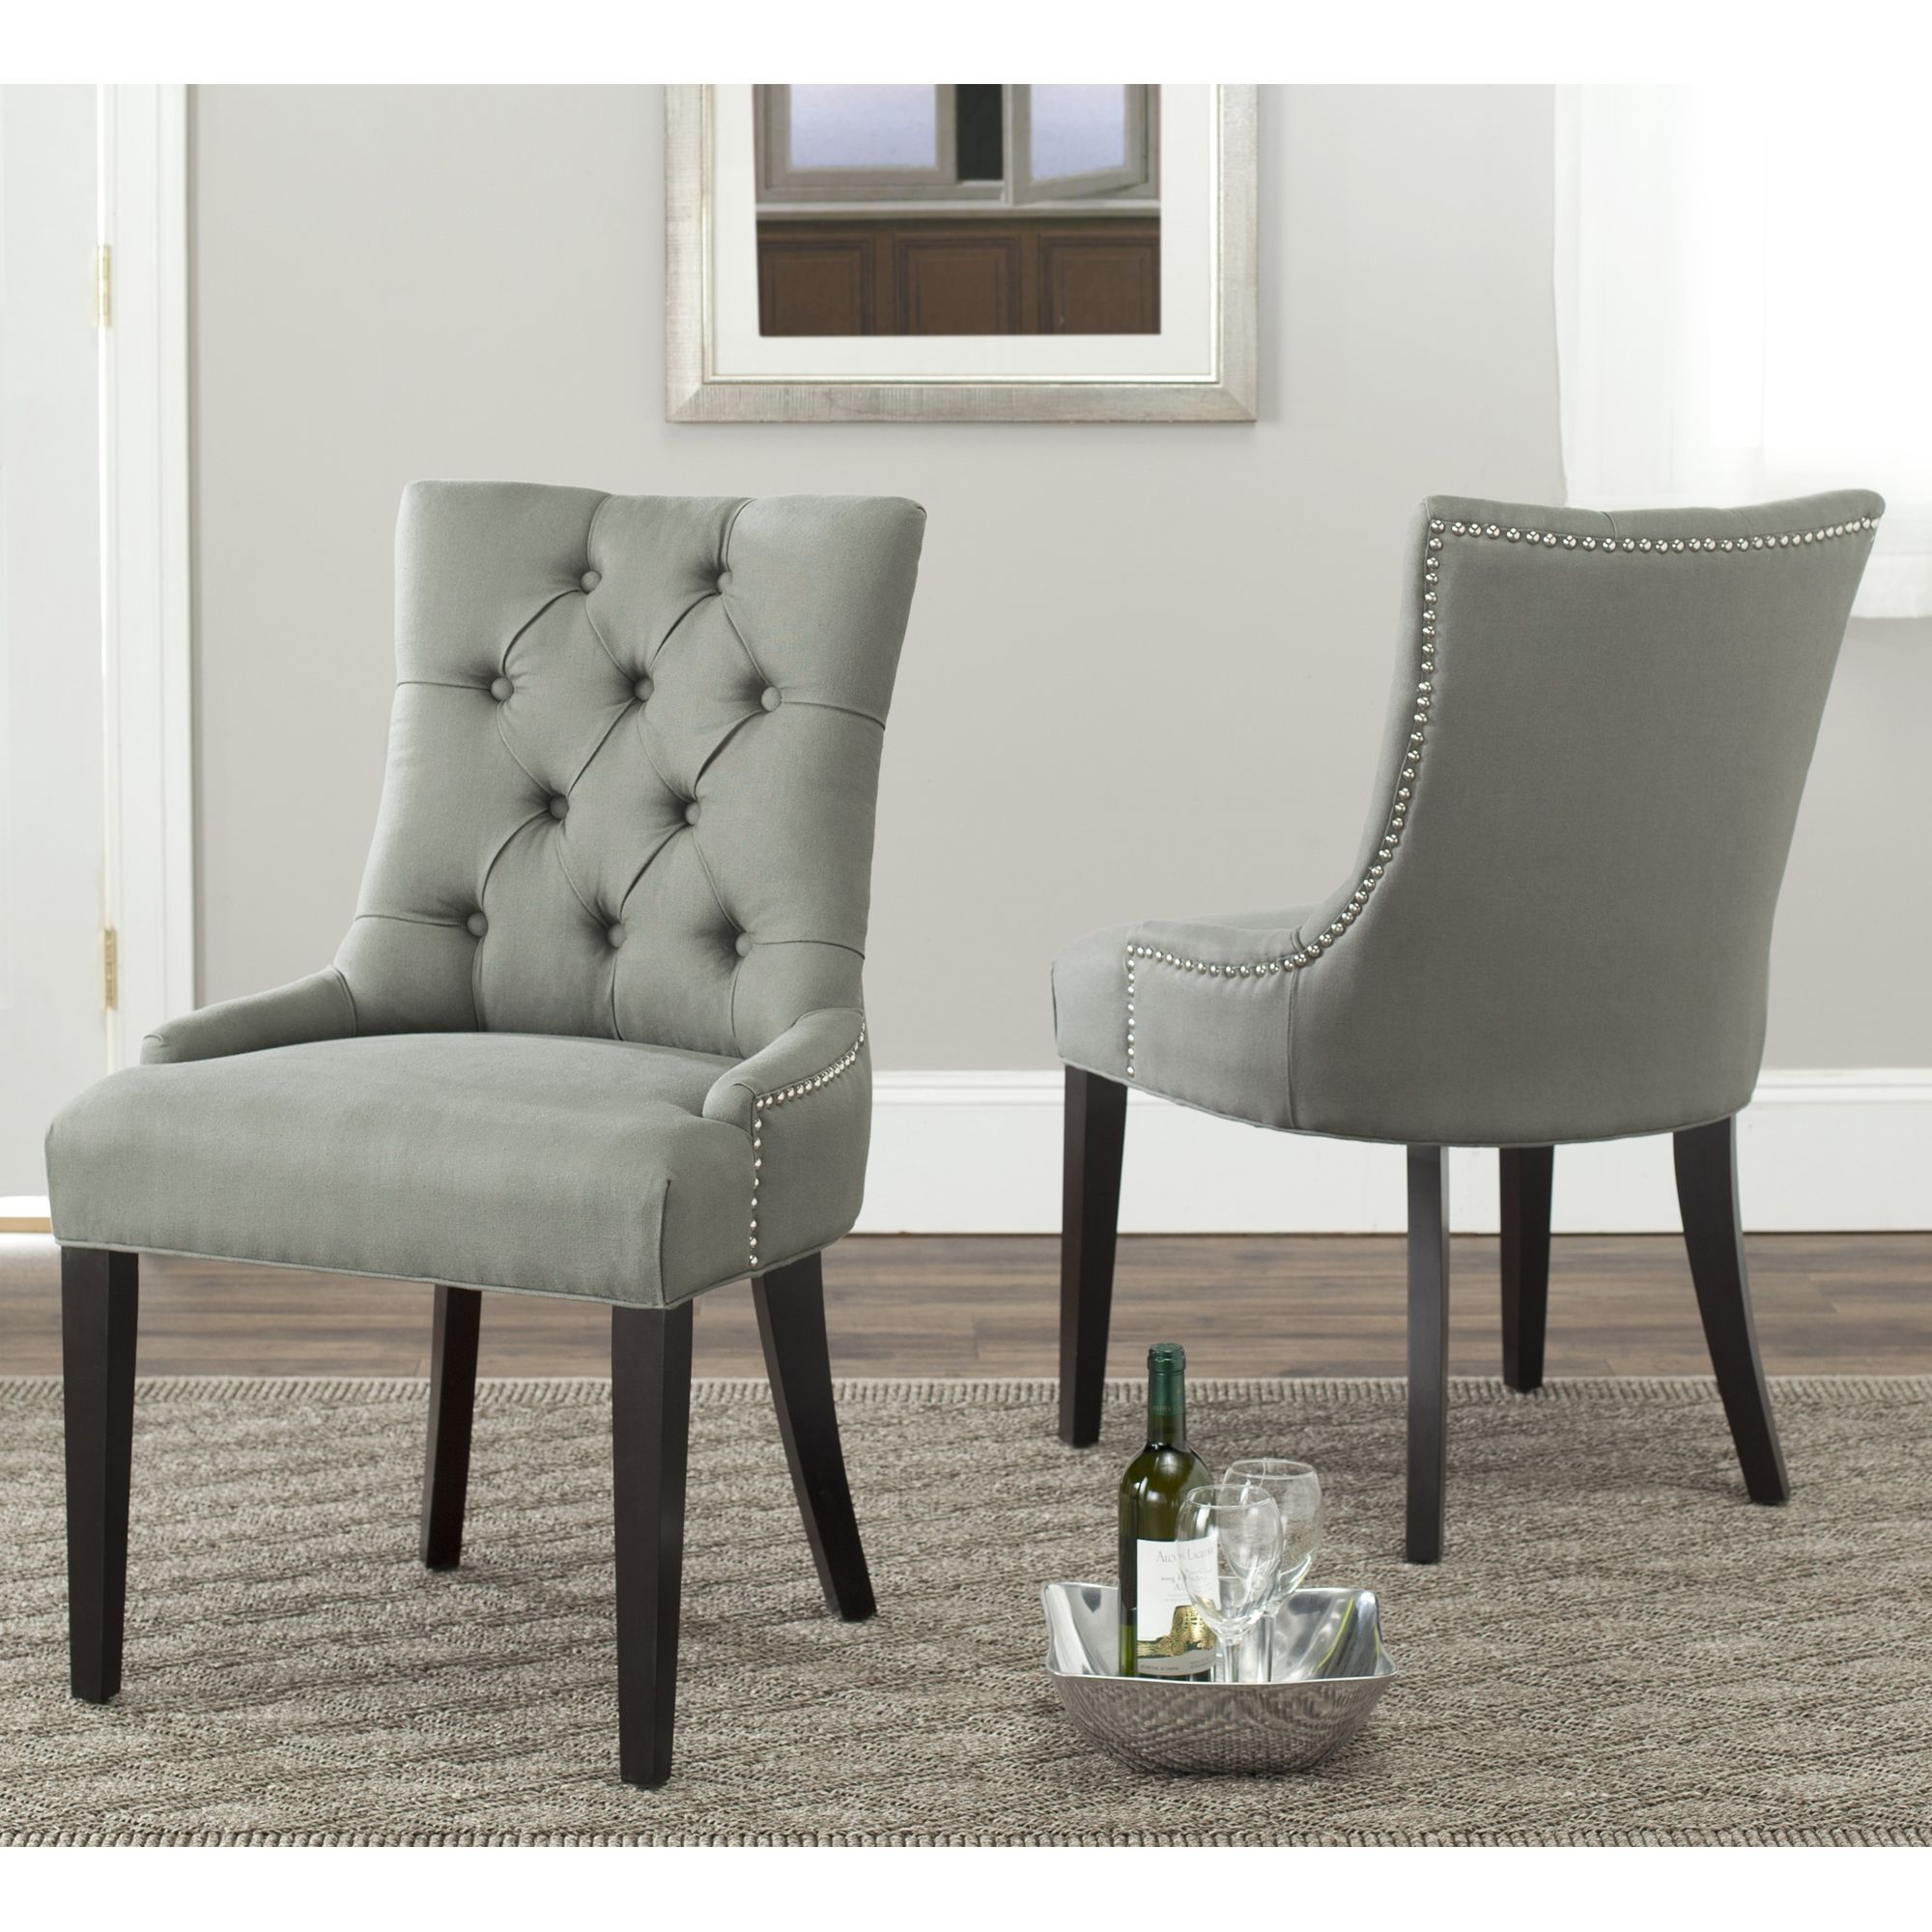 nailhead dining chairs dining room. Safavieh Marseille Grey Linen Nailhead Dining Chairs (Set Of 2) | Overstock.com Shopping - The Best Deals On Room U